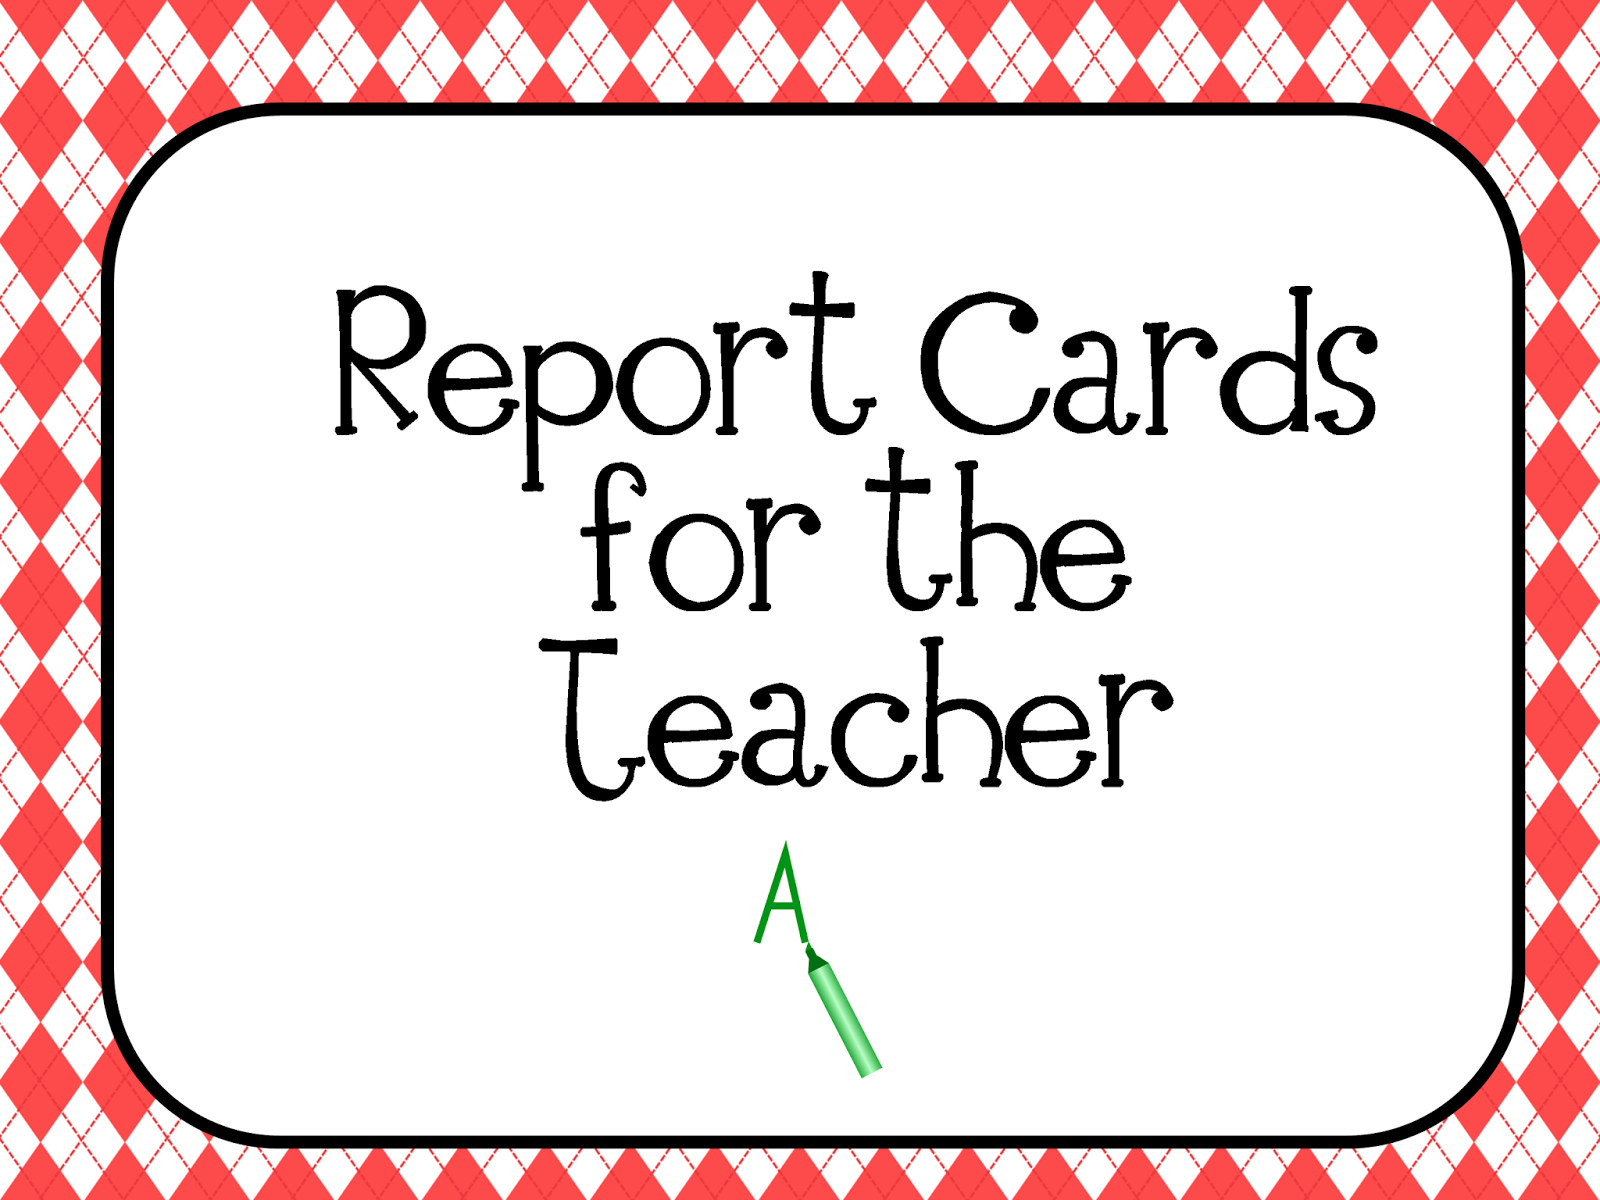 Report Cards for the Teacher - why you should let your students give YOU a report card.